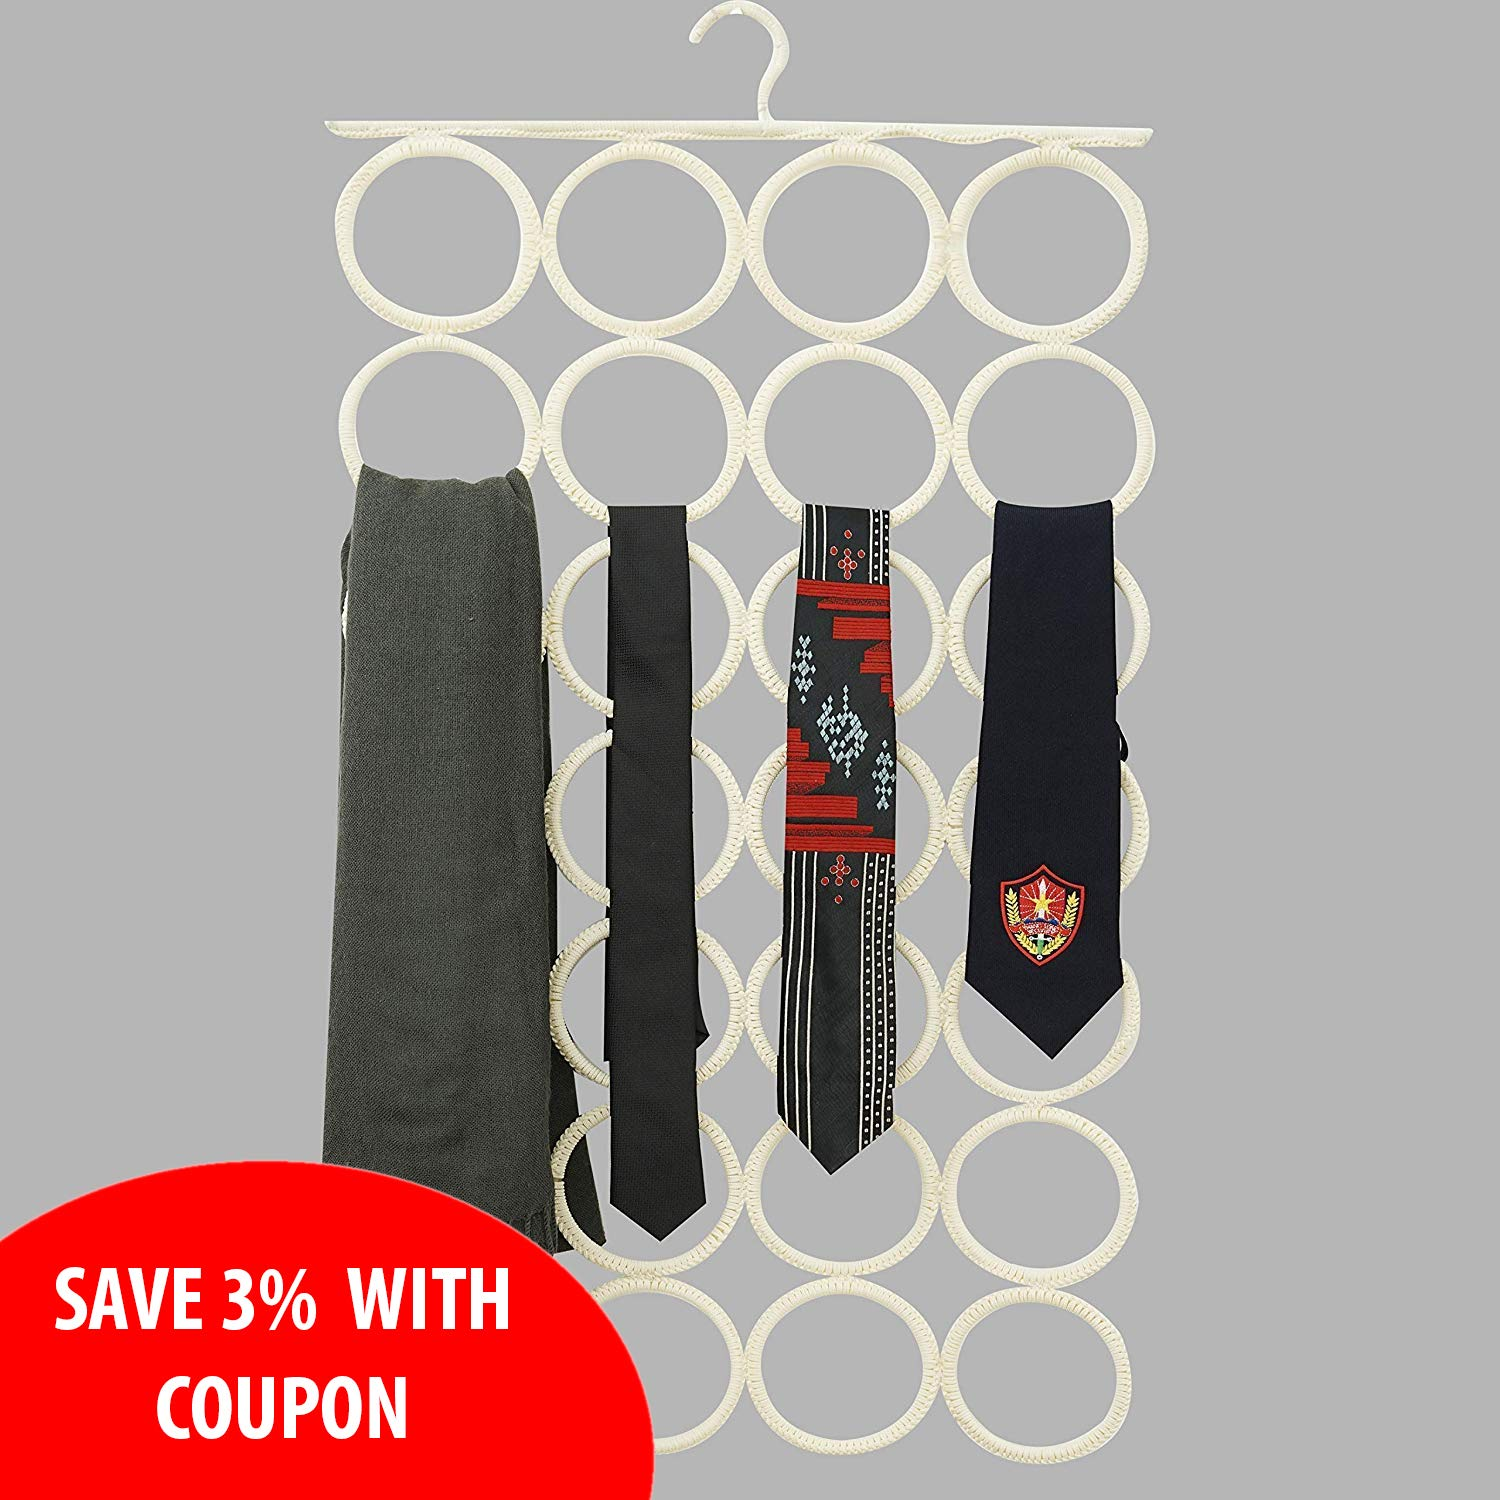 AURALEAP Scarf Organizer, Scarf Hanger 28 Rings, The Best Space Saving Hanger for Scarves,Clothes, Pashminas, Infinity Scarves & Accessories (W17 x L16) (4x7).